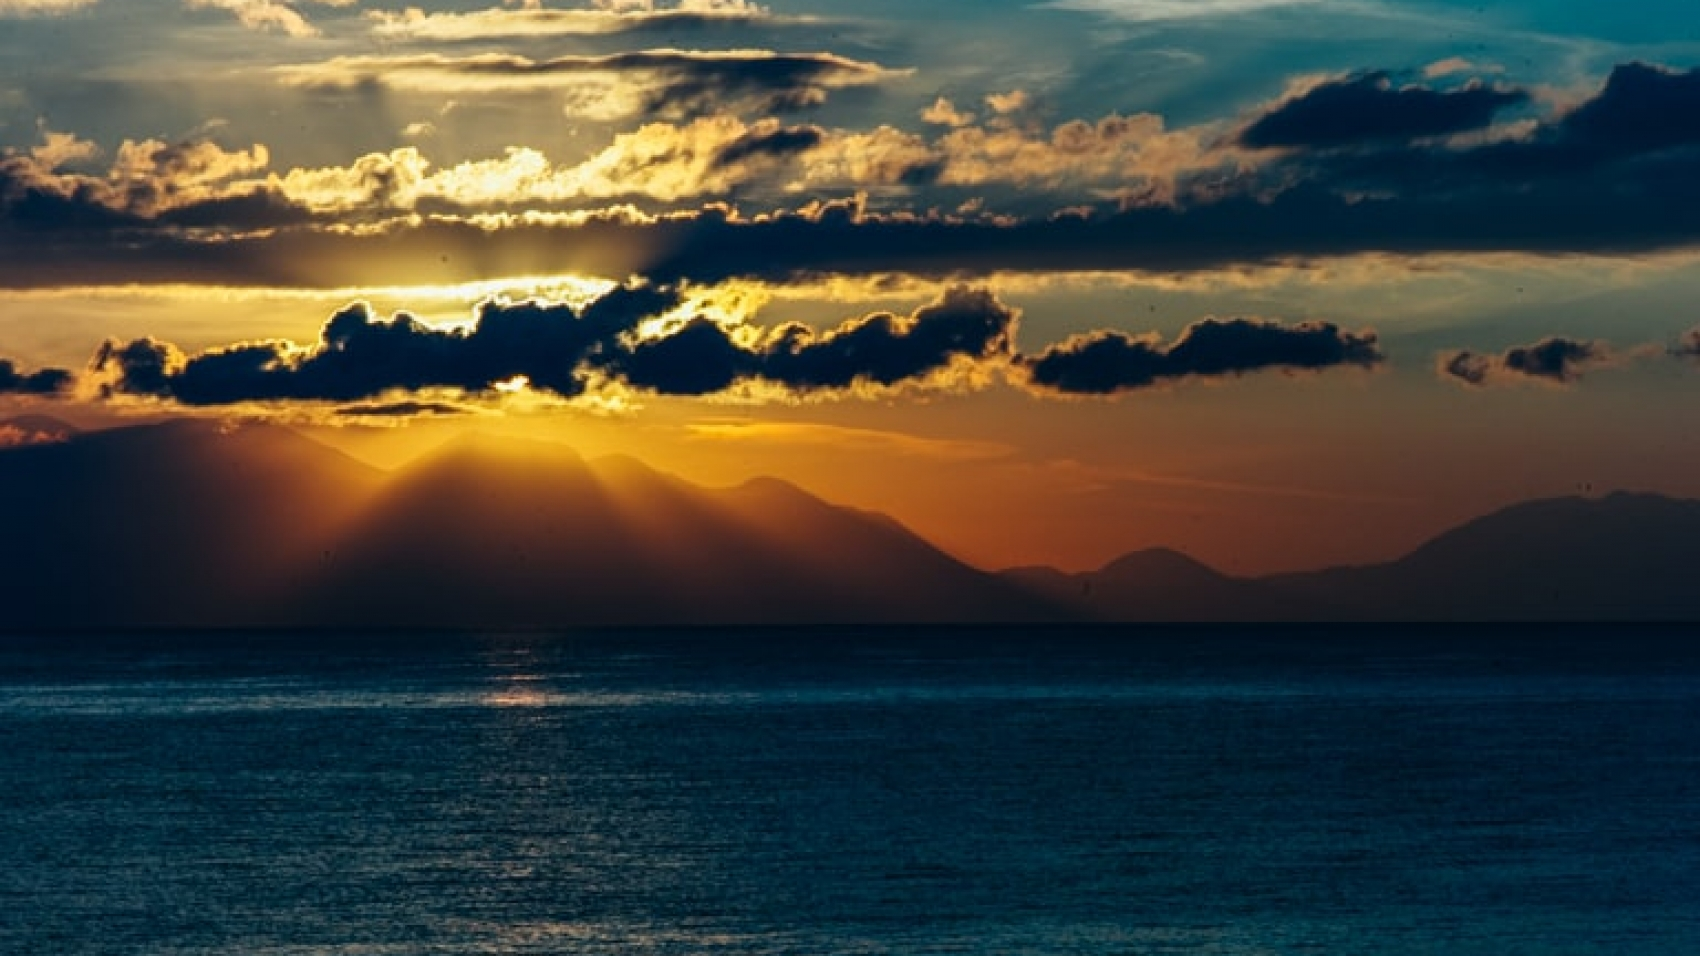 Sunrise Above Taigetos with Clouds - Koroni Sky Story